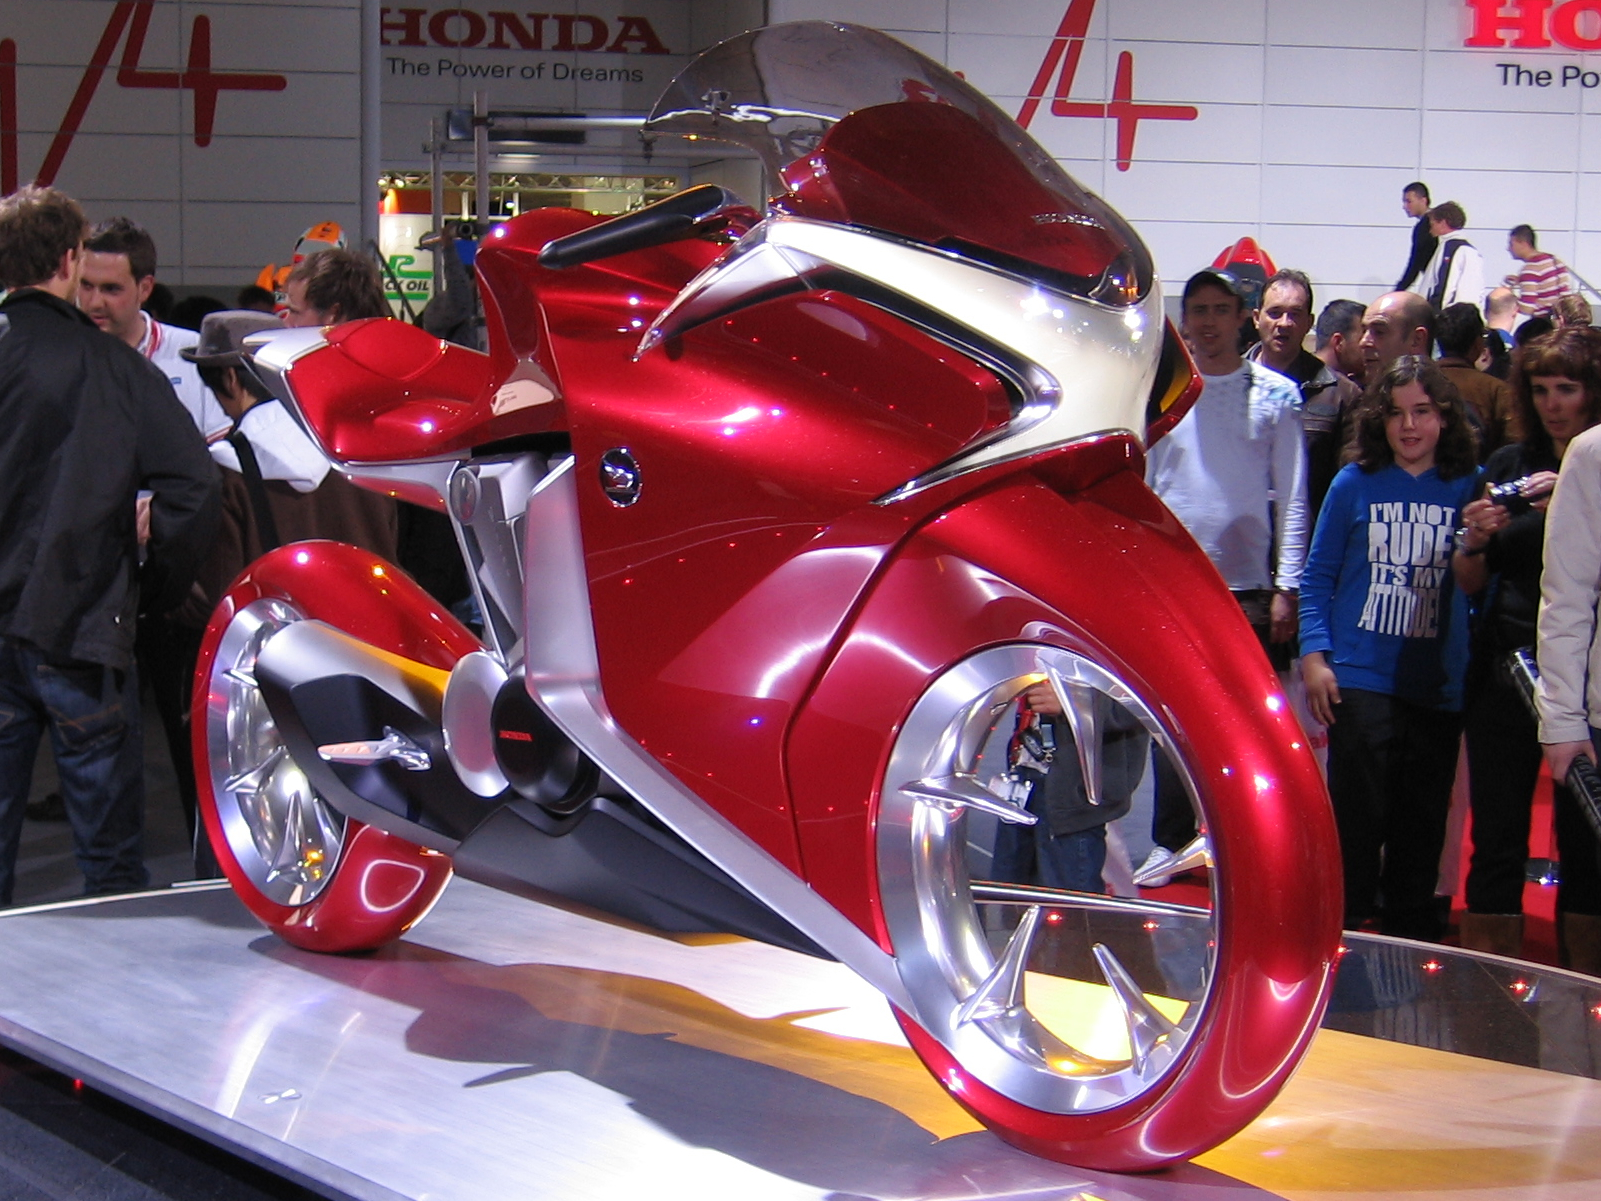 file:honda v4 concept model at intermot 2008 right front